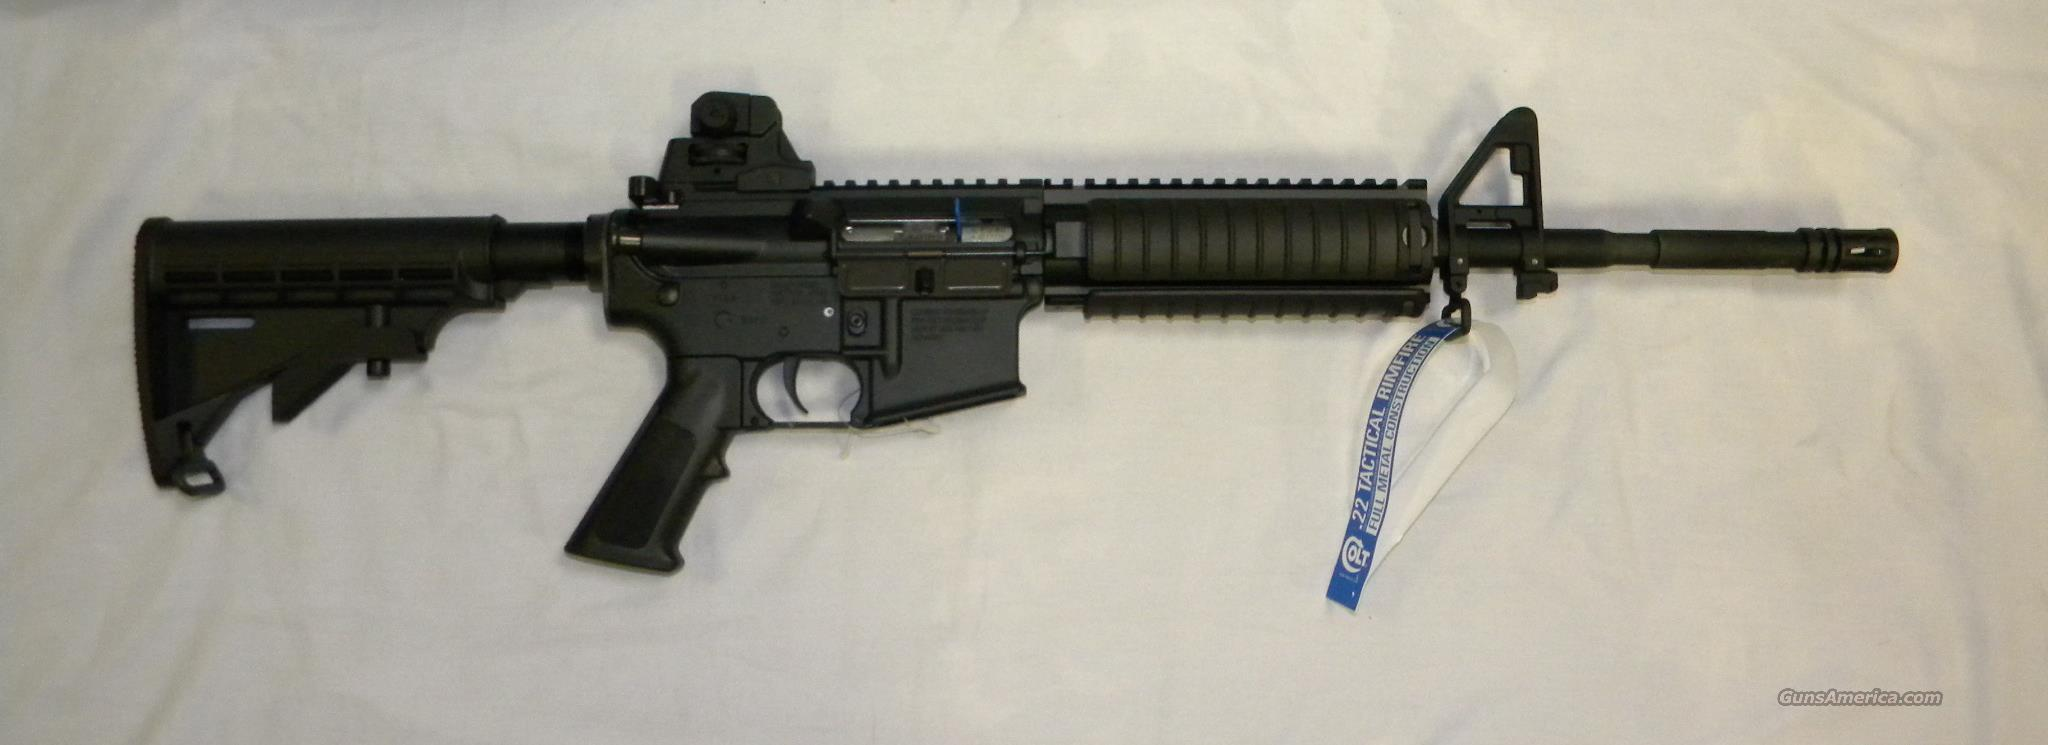 Colt M-4 Carbine, .22 LR, Made In Germany By Walther  Guns > Rifles > Colt Military/Tactical Rifles